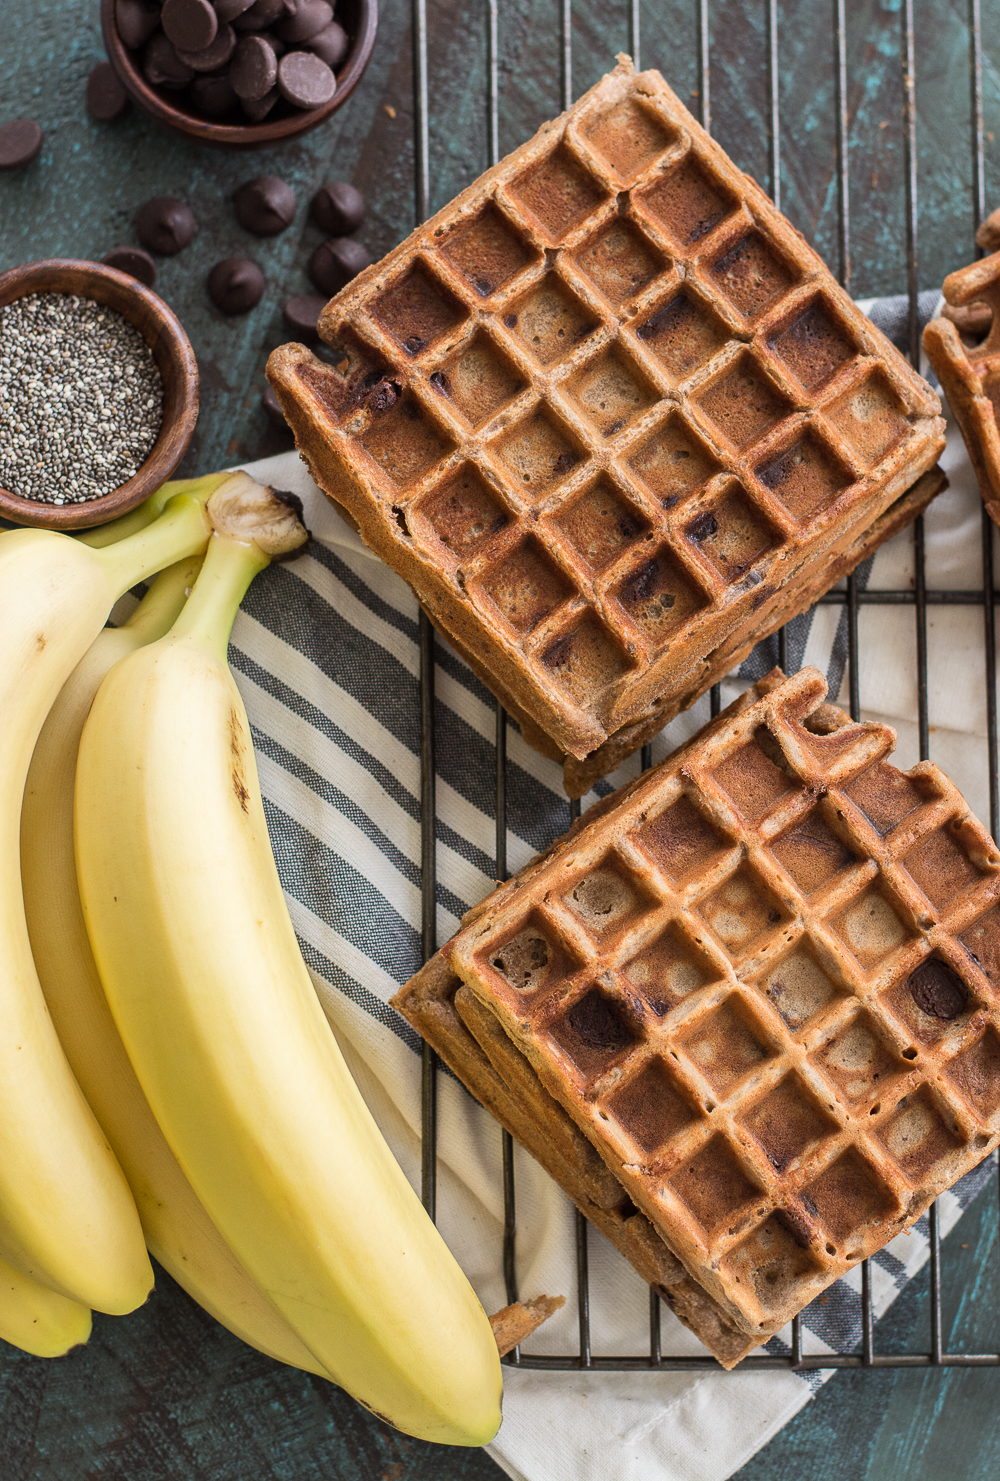 Add these Flourless Peanut Butter Protein Waffles to your morning routine! These gluten free waffles are a great easy meal prep option!